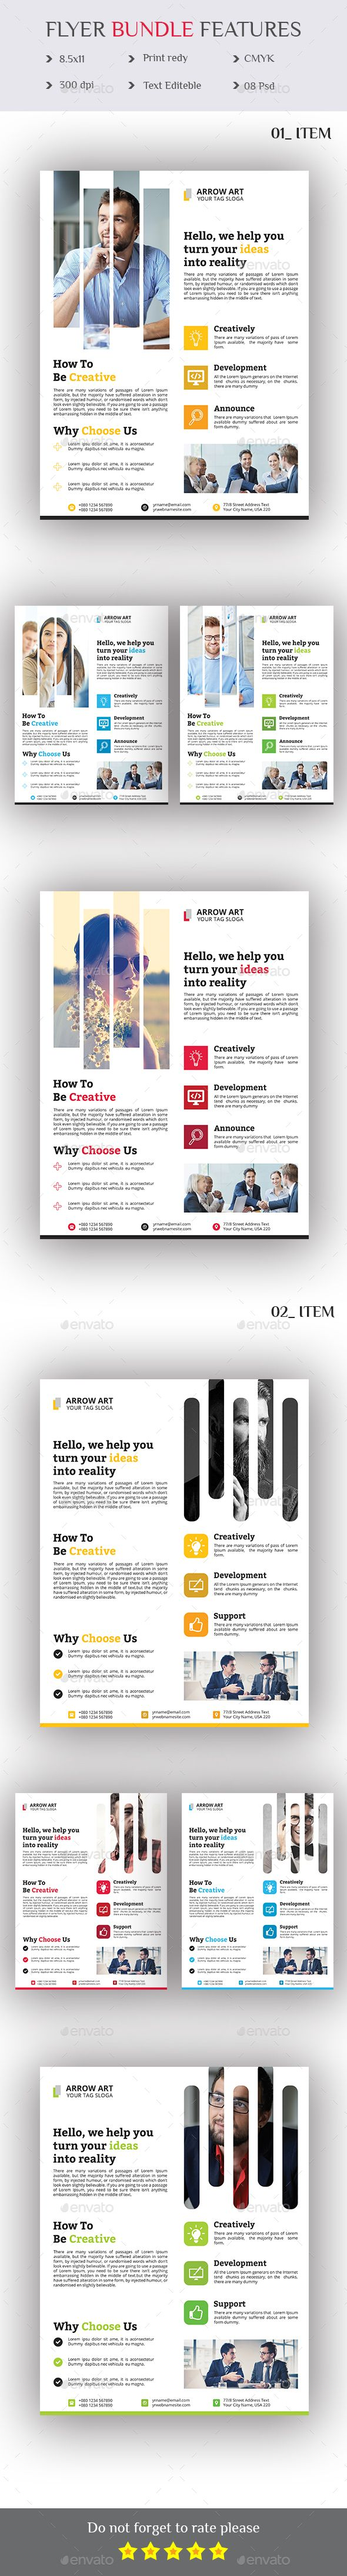 Flyer Bundle 2 in 1 - Template PSD                                                                                                                                                                                 More